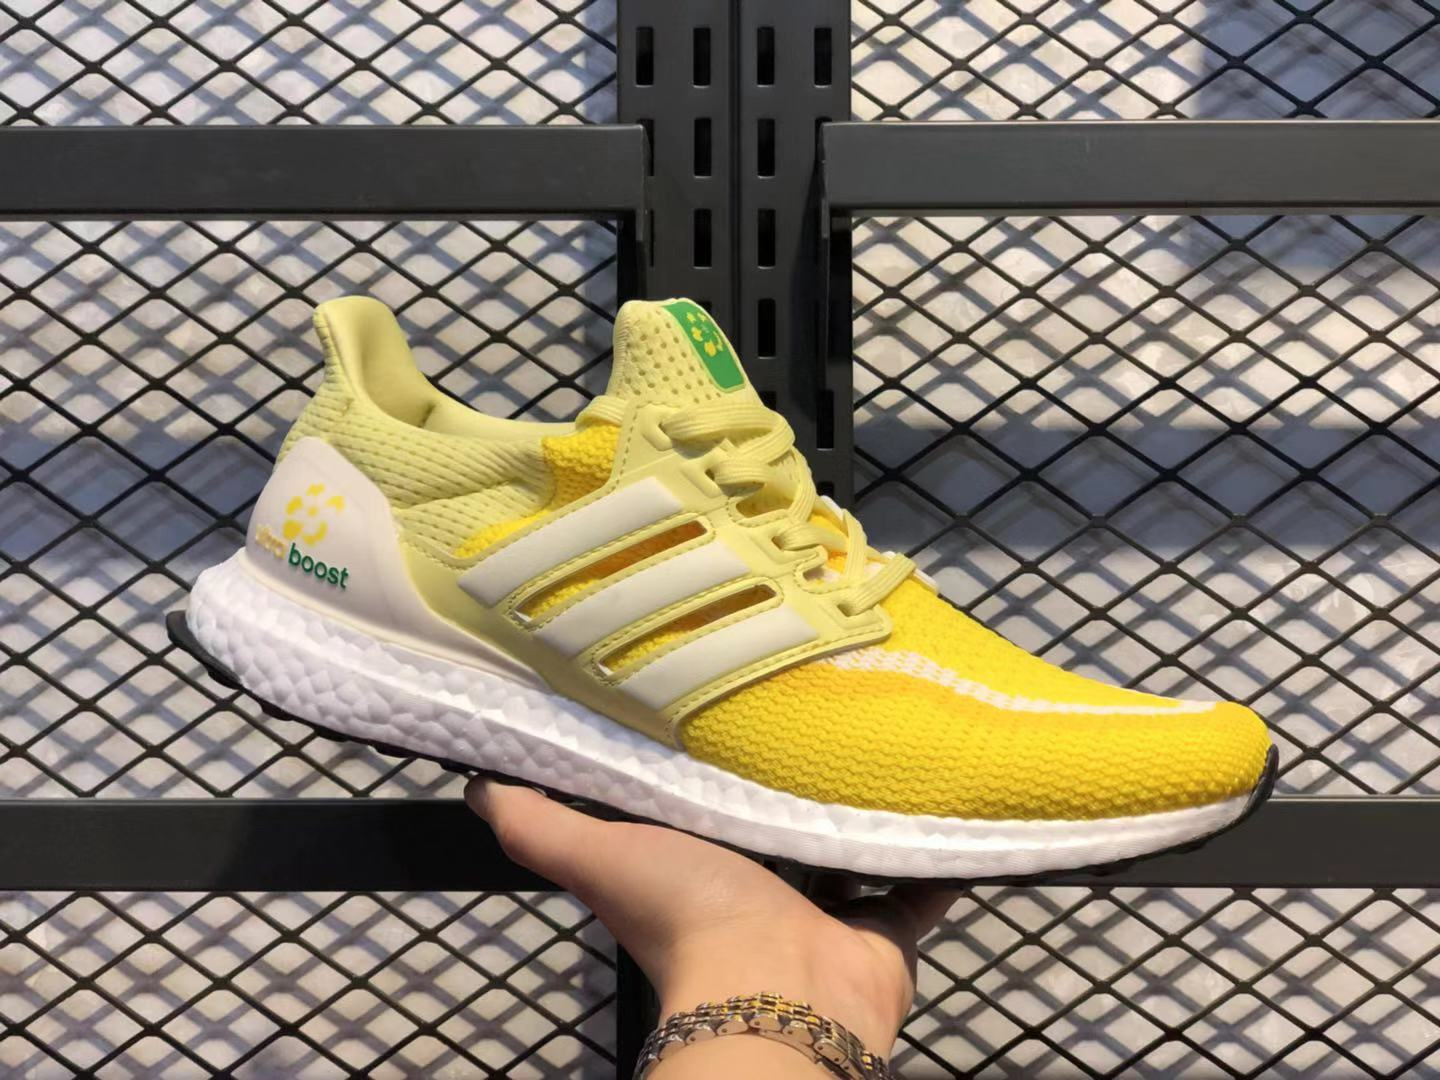 Adidas Ultra Boost Ginger Yellow/White Sneakers Online Buy FW5232